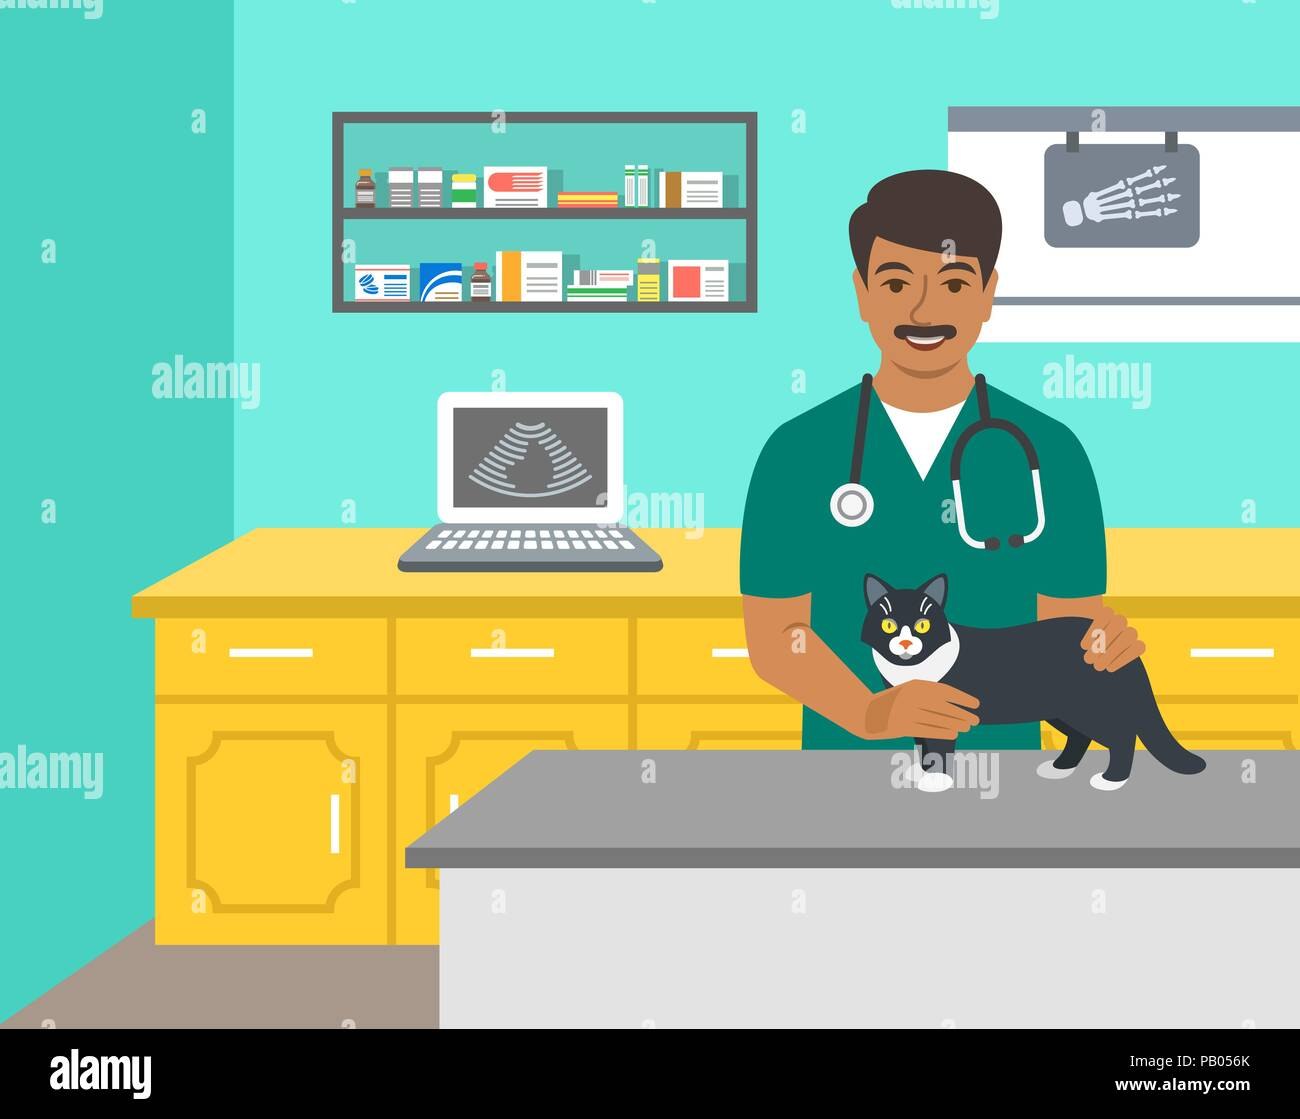 Veterinarian doctor holds dog on examination table in vet clinic. Vector cartoon illustration. Pets health care background. Domestic animals treatment - Stock Vector